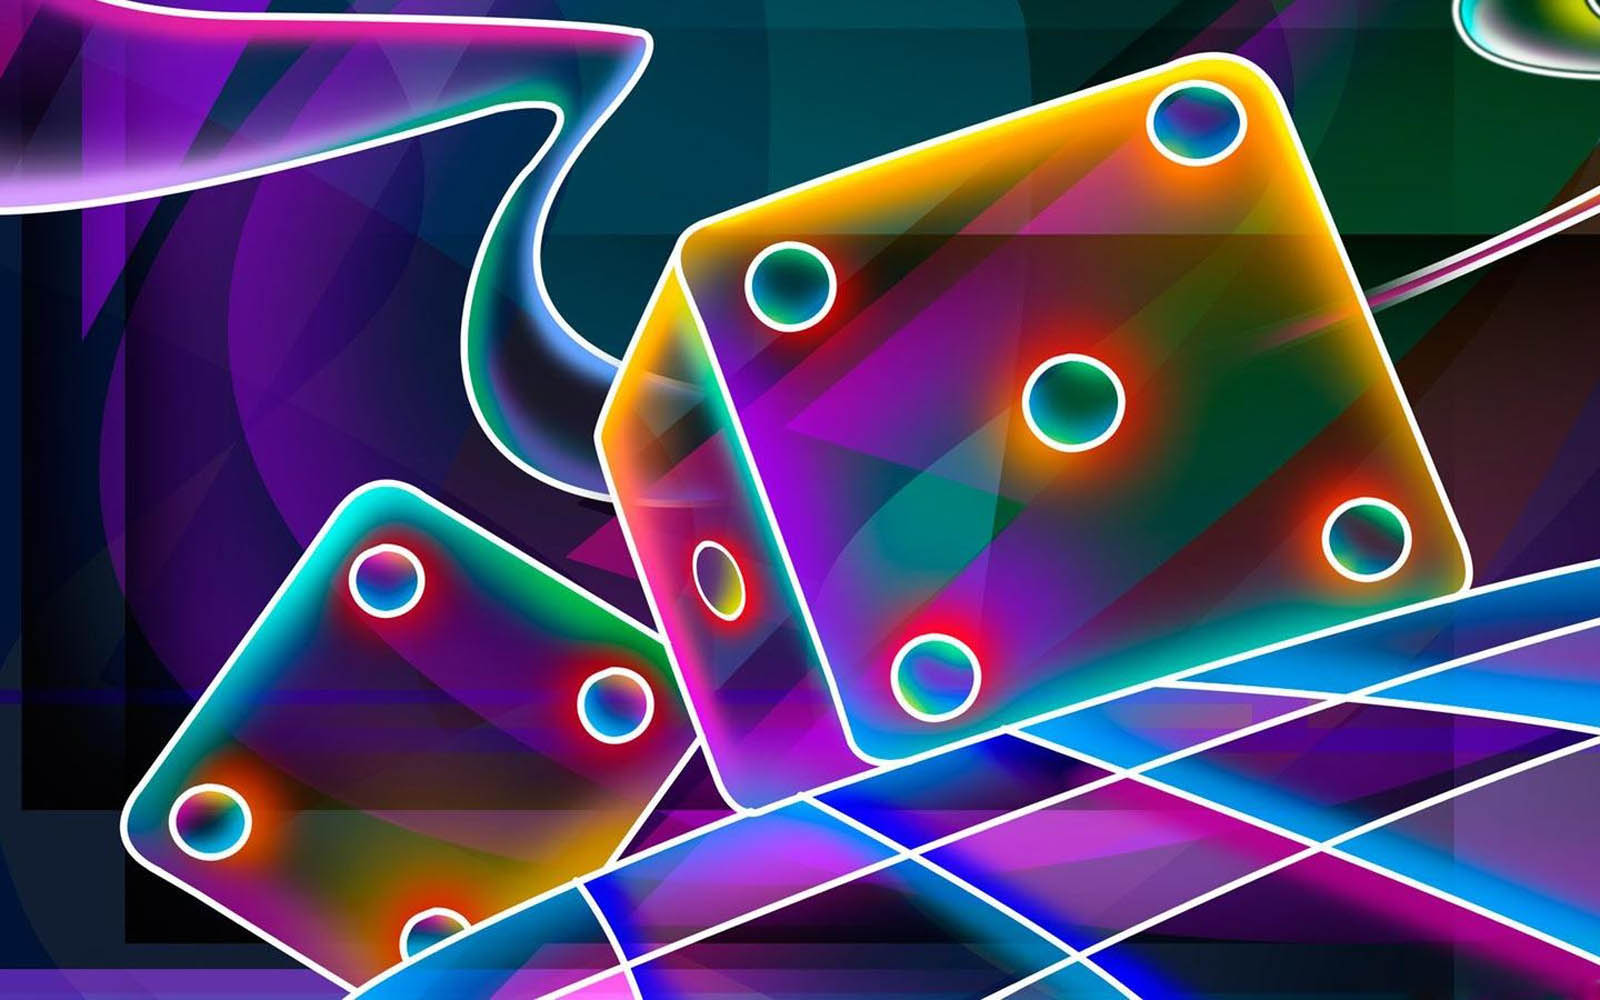 wallpapers Neon Art Wallpapers 1600x1000